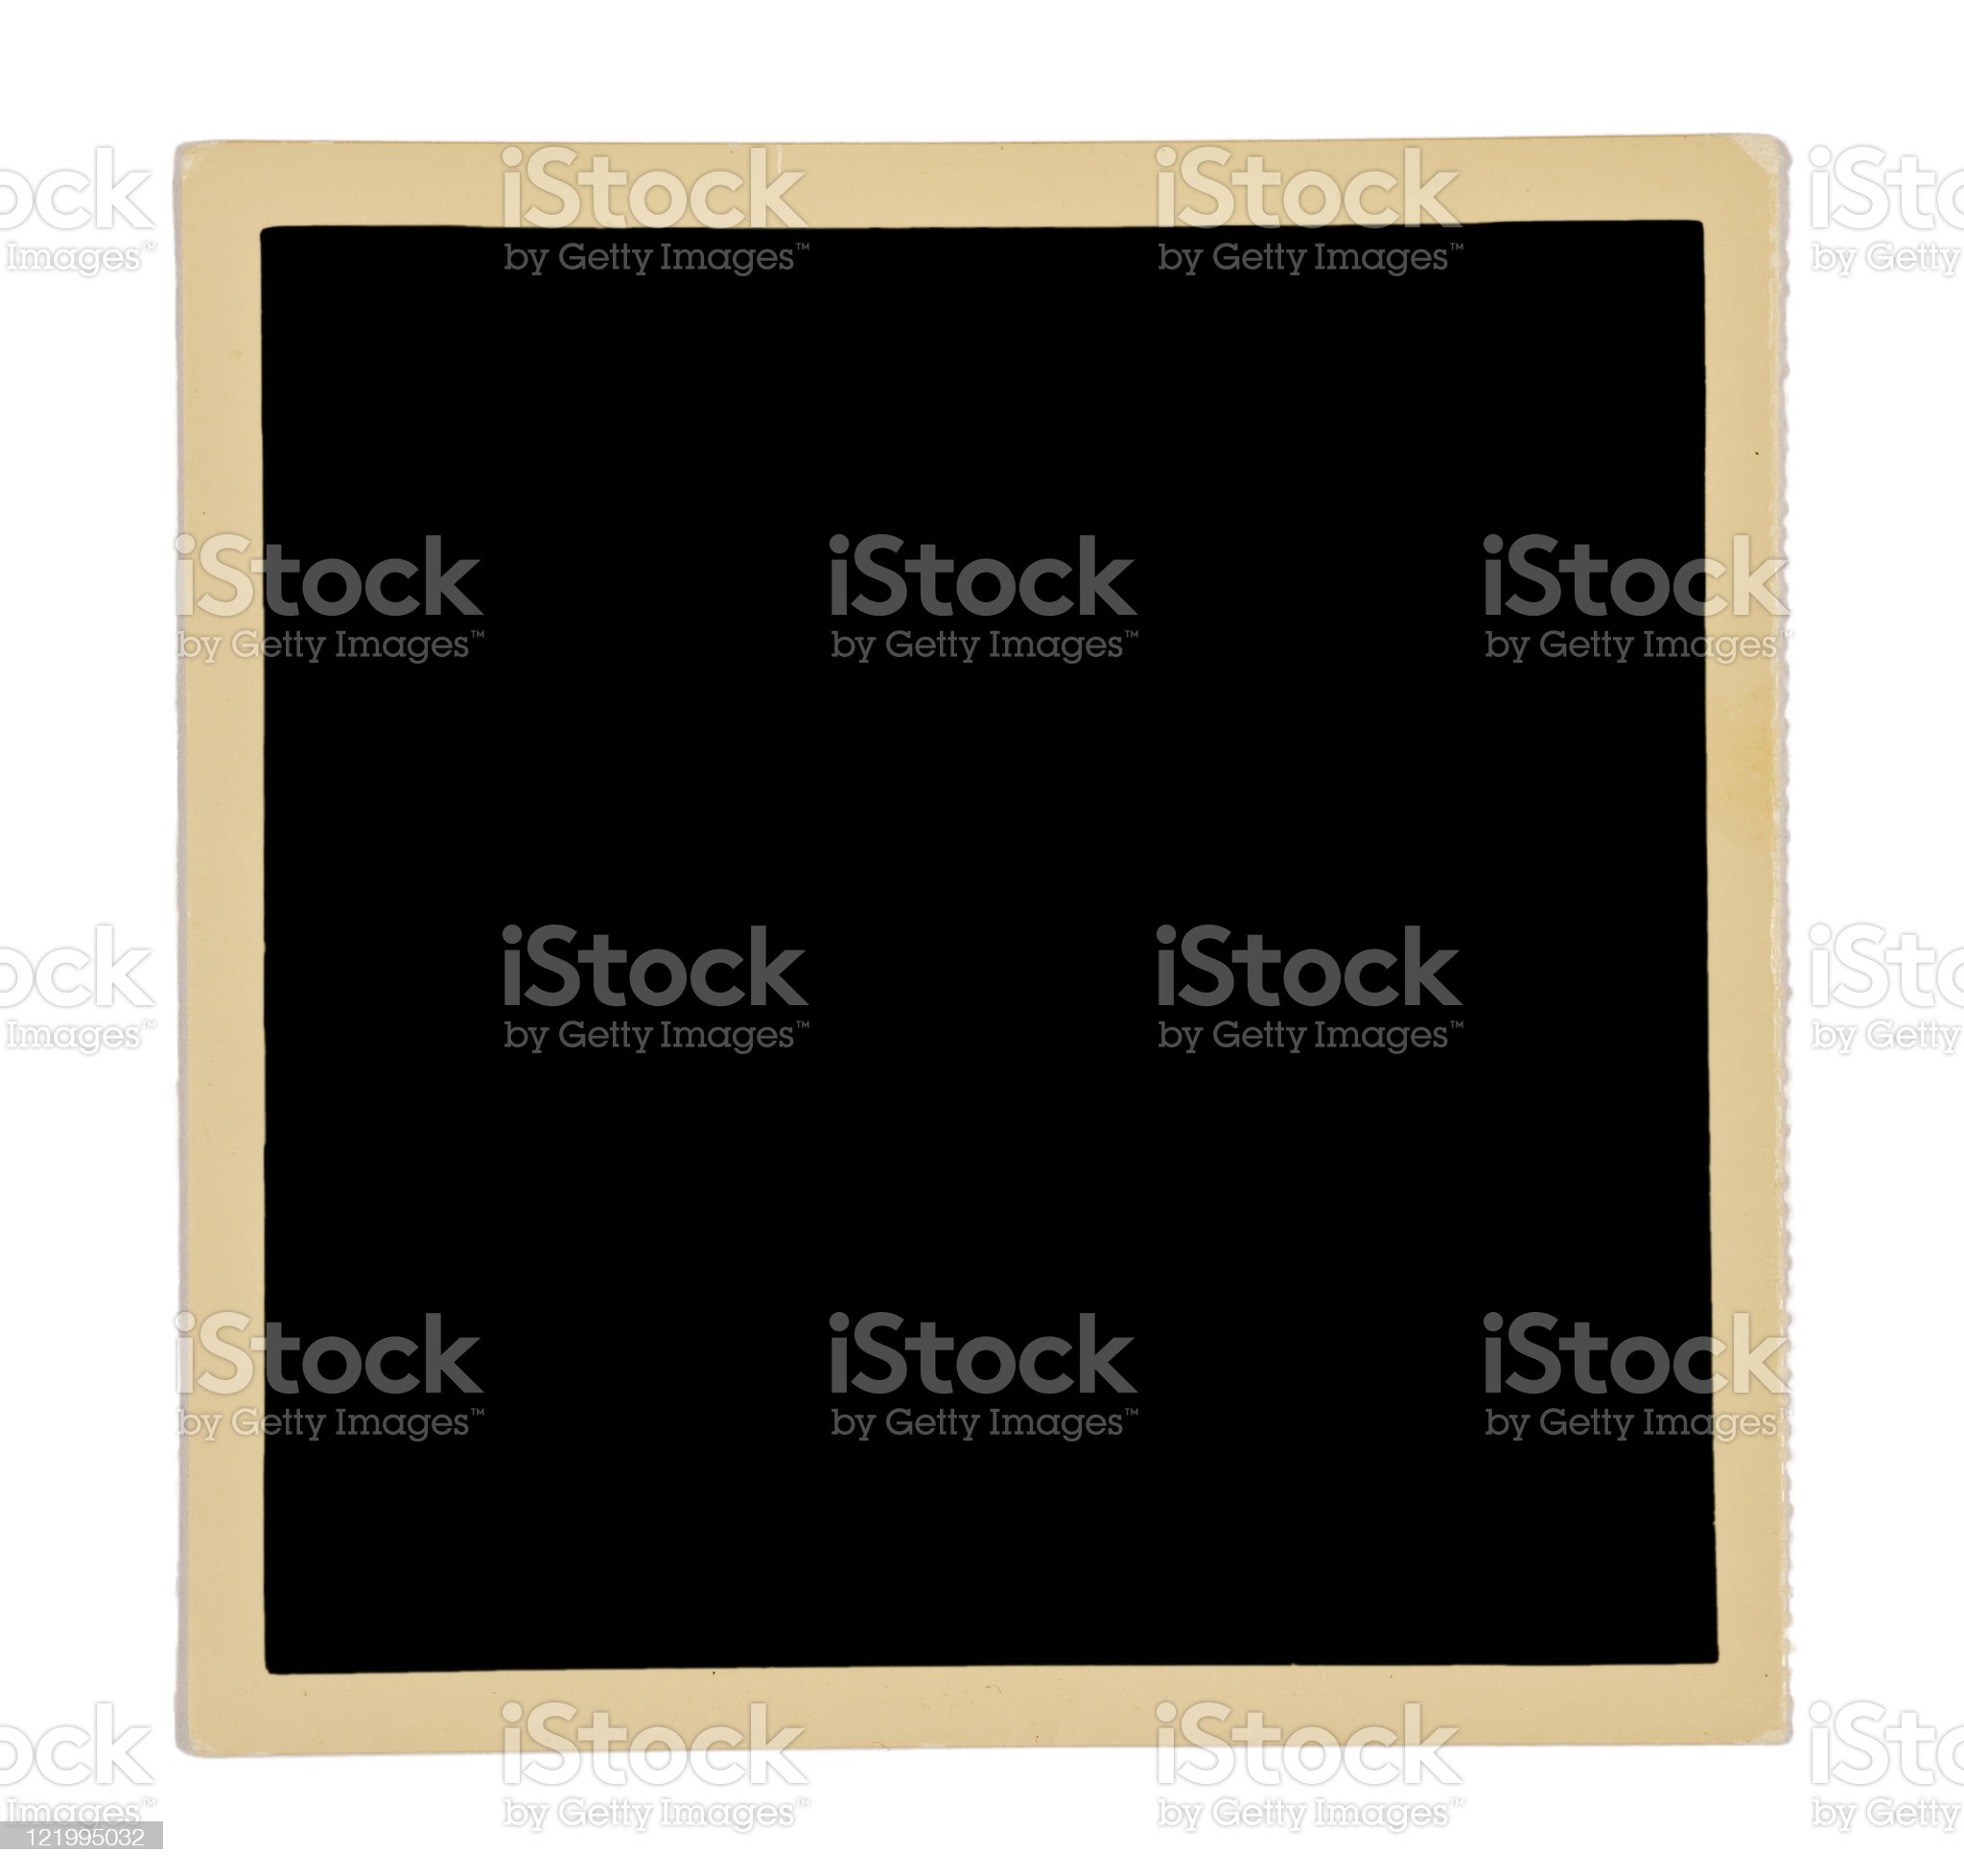 Yellowed Square Photo Border From The 50s royalty-free stock photo